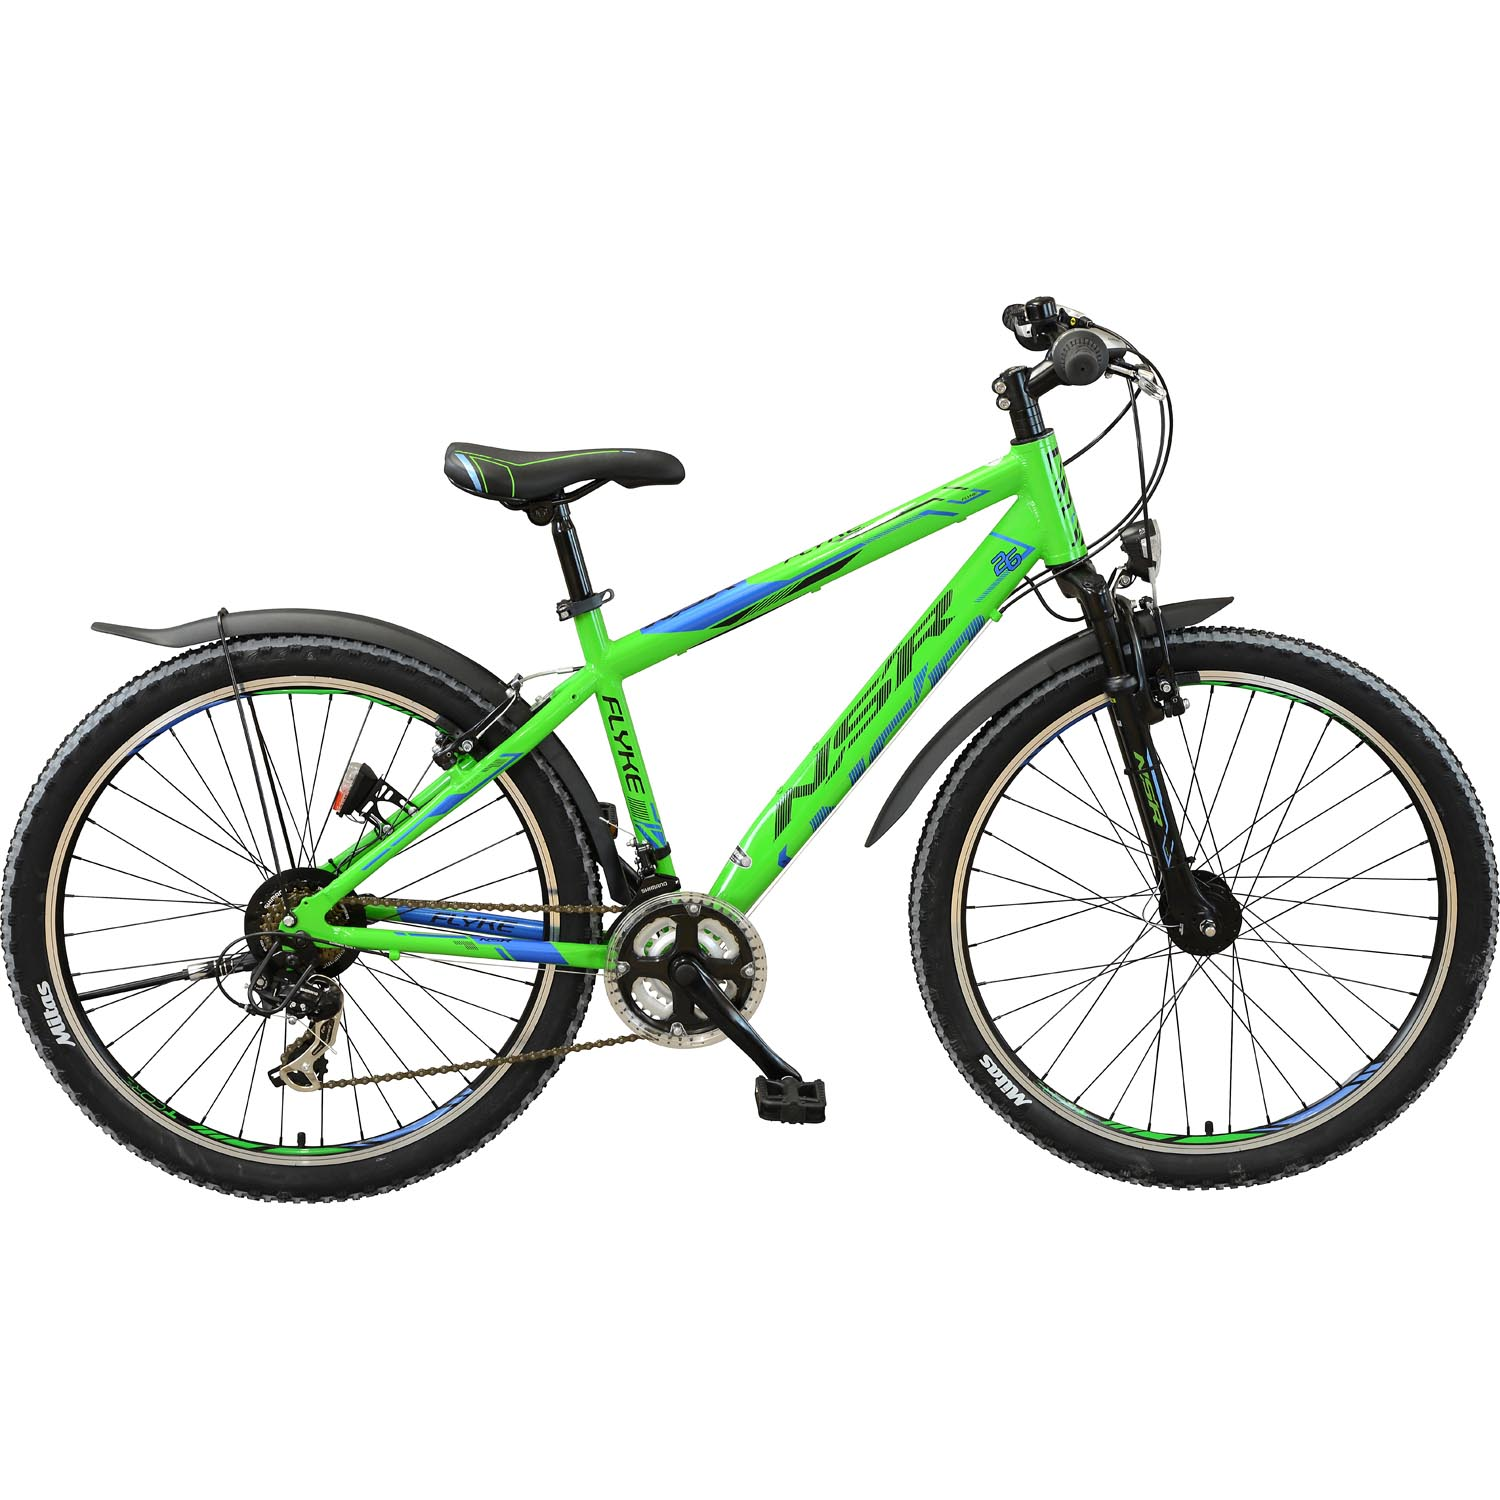 flyke mountainbike 26 zoll 47 cm schwarz gr n online. Black Bedroom Furniture Sets. Home Design Ideas